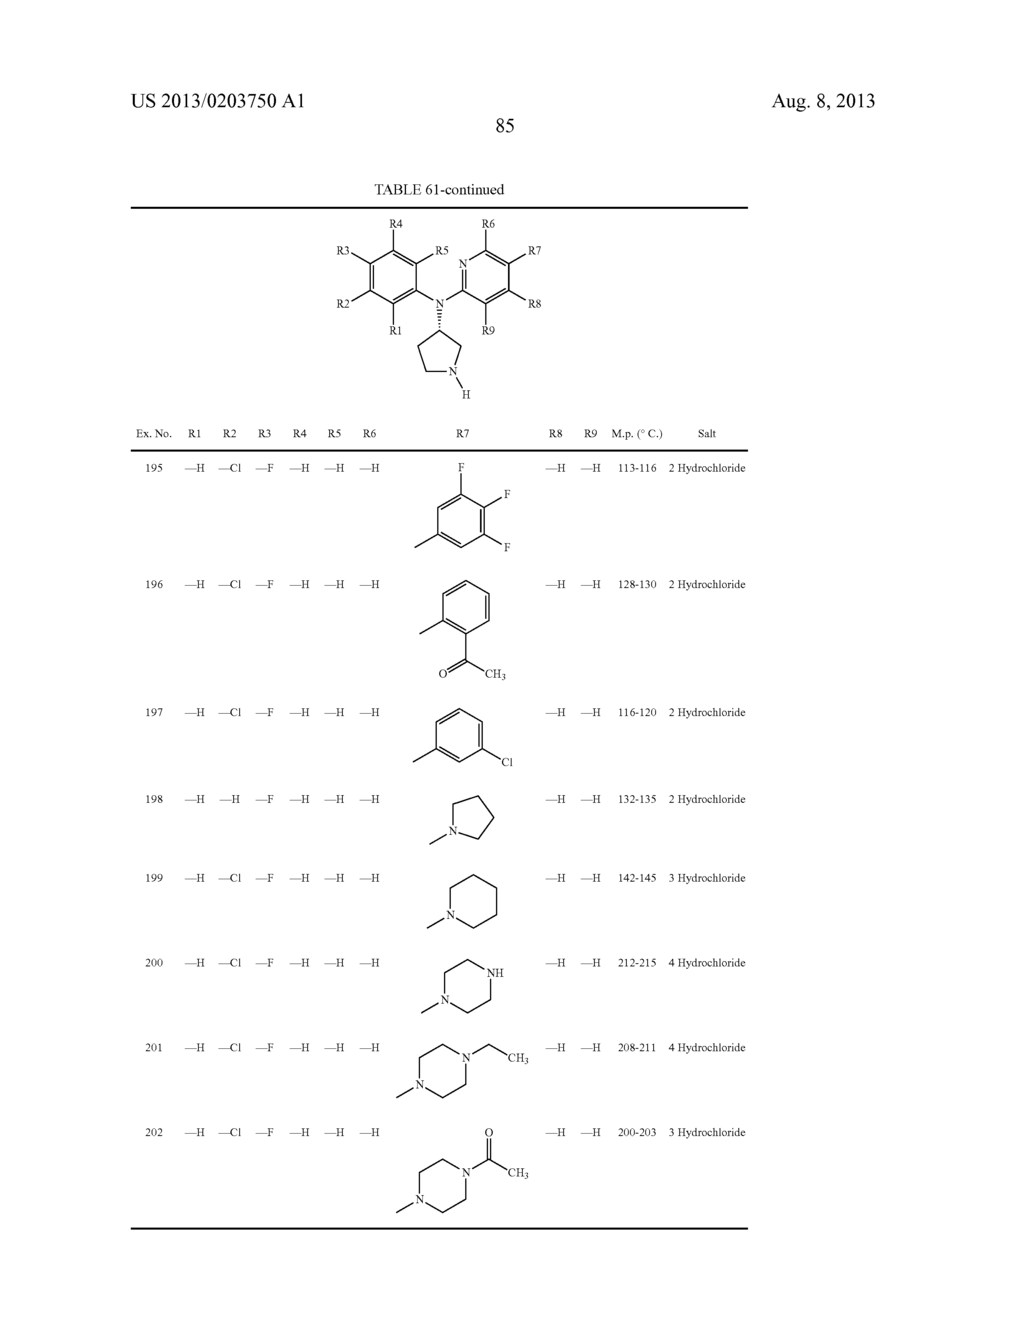 N,N-SUBSTITUTED 3-AMINOPYRROLIDINE COMPOUNDS USEFUL AS MONOAMINES REUPTAKE     INHIBITORS - diagram, schematic, and image 86